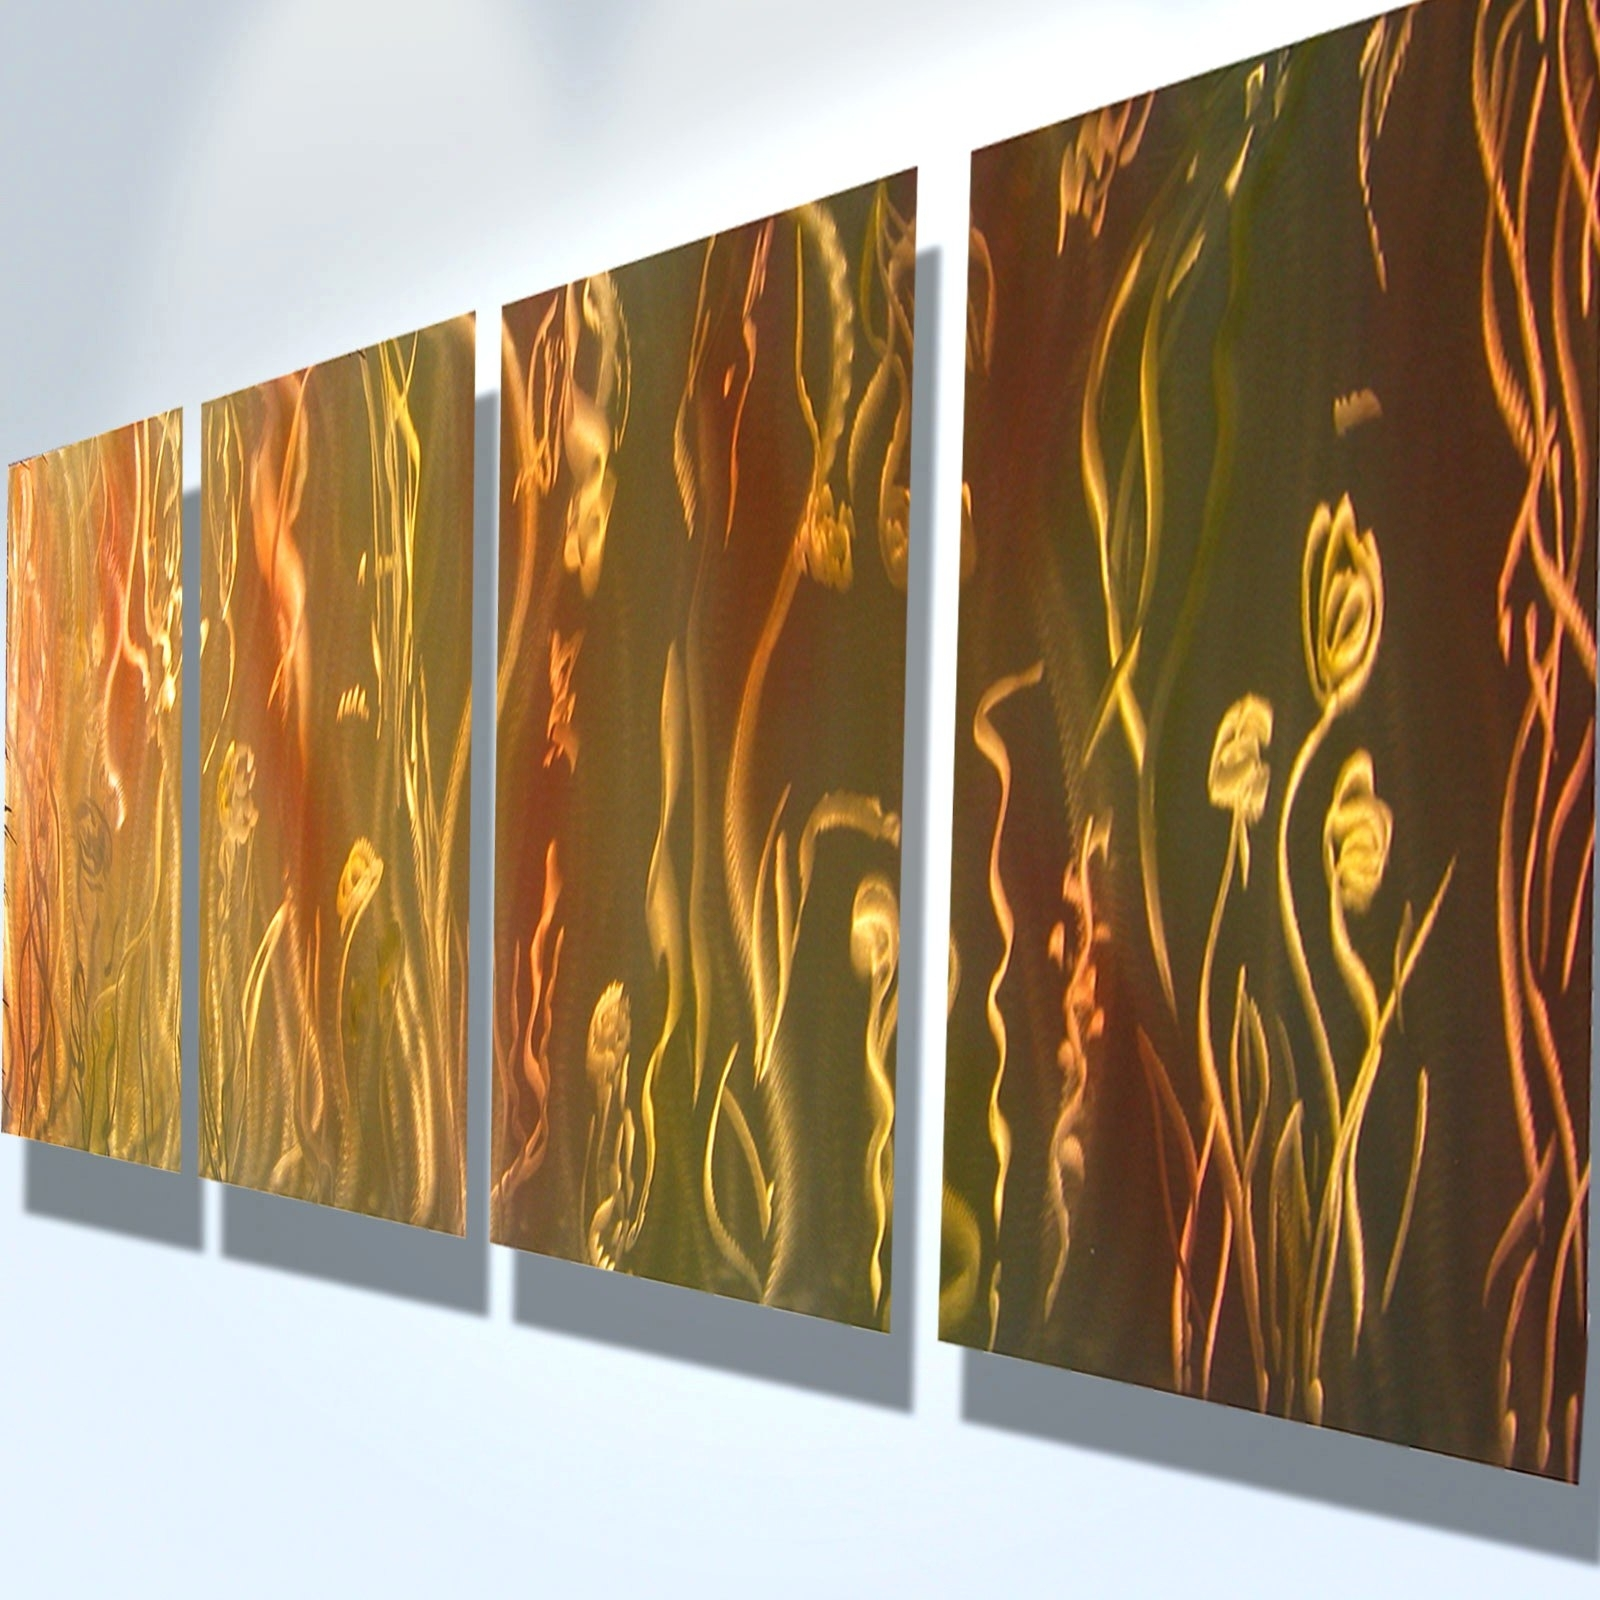 Most Popular Wall Arts ~ Geometric Modern Metal Abstract Wall Art Modern Metal Pertaining To Melbourne Abstract Wall Art (View 7 of 15)